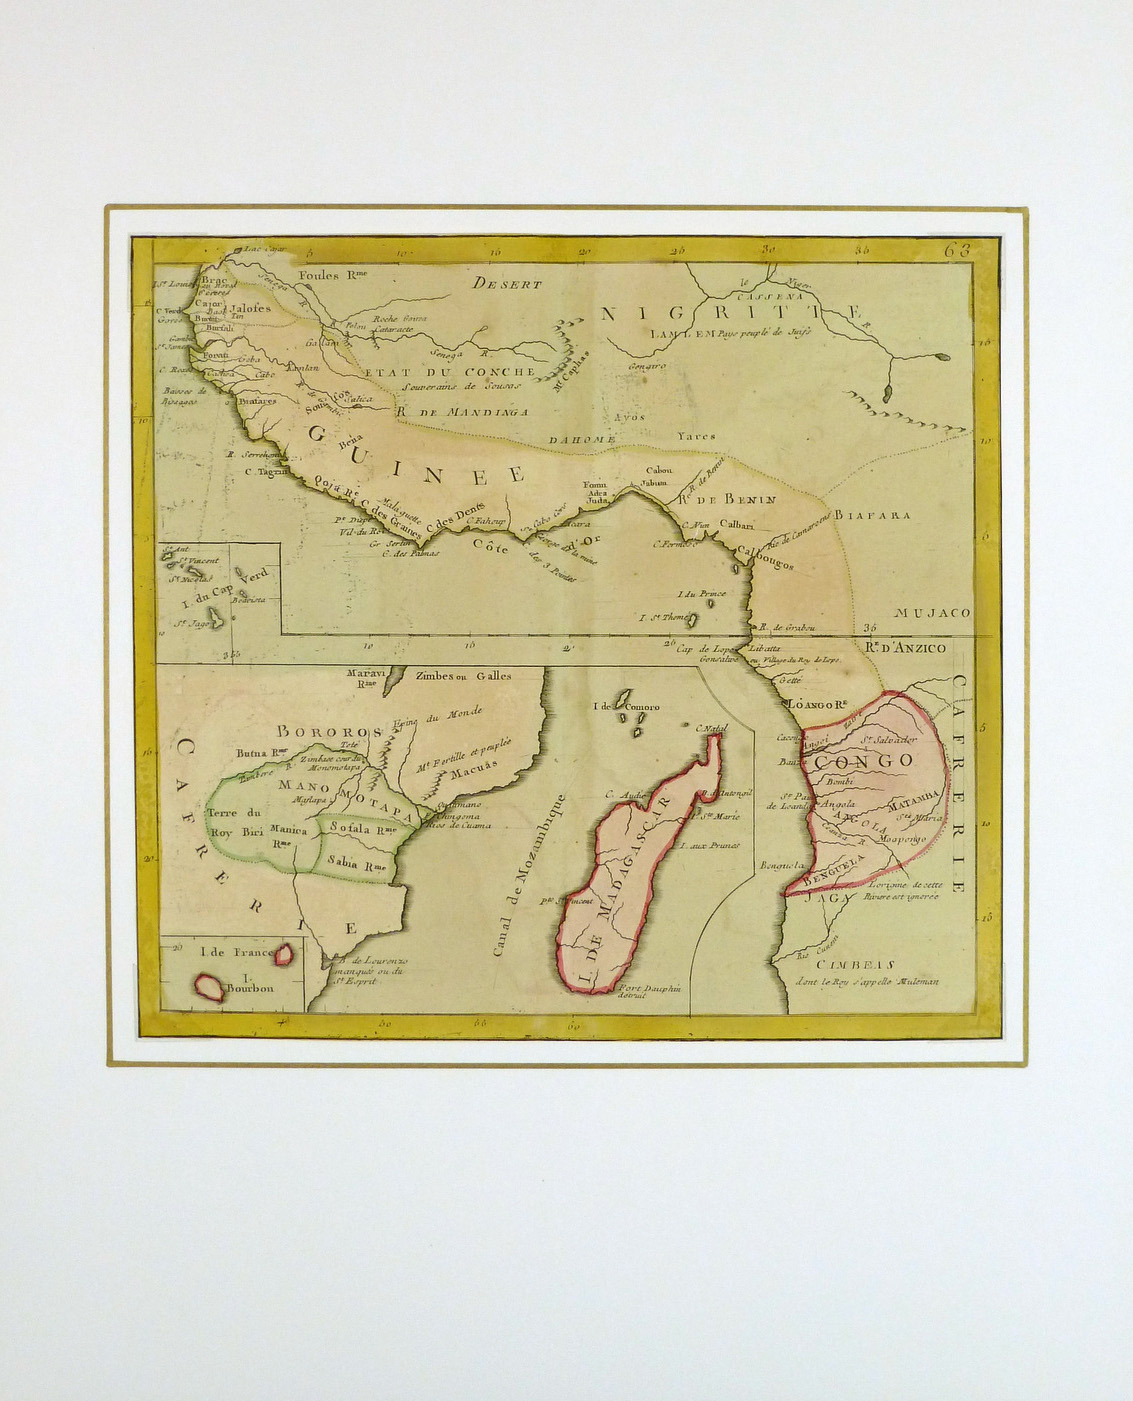 Antique map of africa by clouet 1767 map africa 1767 matted 8121k ccuart Choice Image